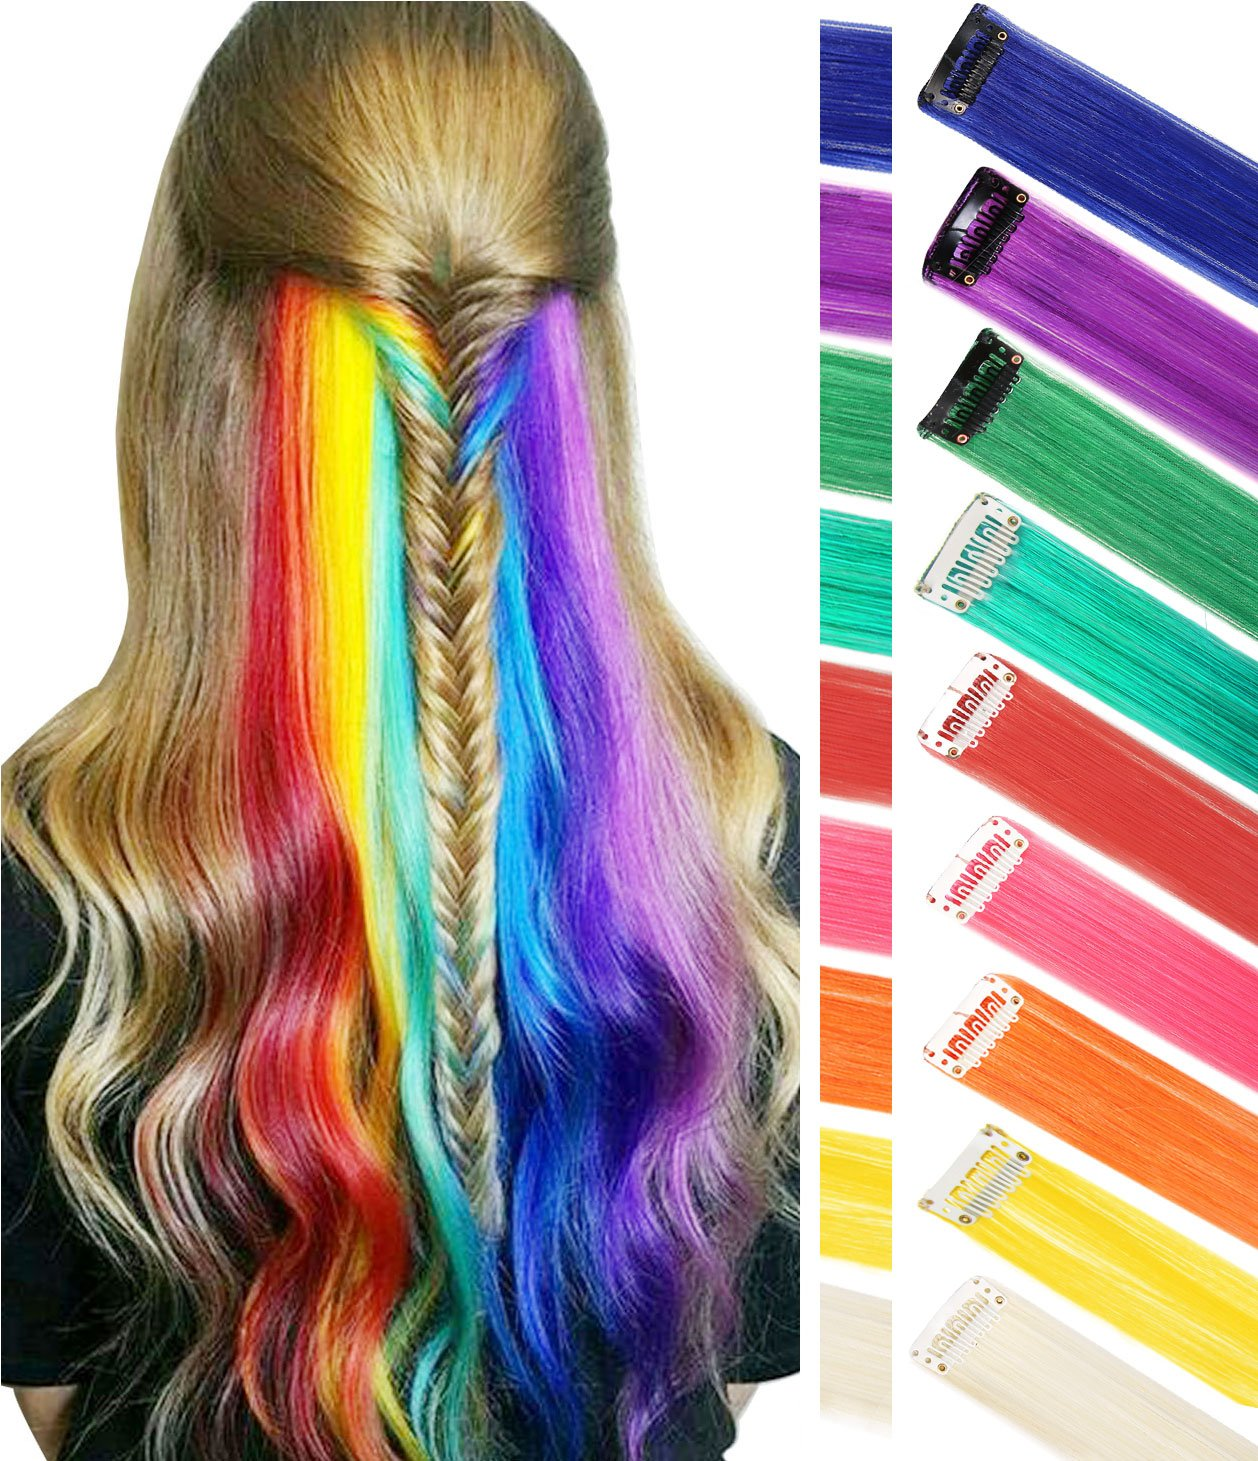 Wig Pieces for kids Clip In/On Colored Hair Extension For Amercian Girls And Dolls Fashion Hair Accessories 9PCS (Rainbow Color)